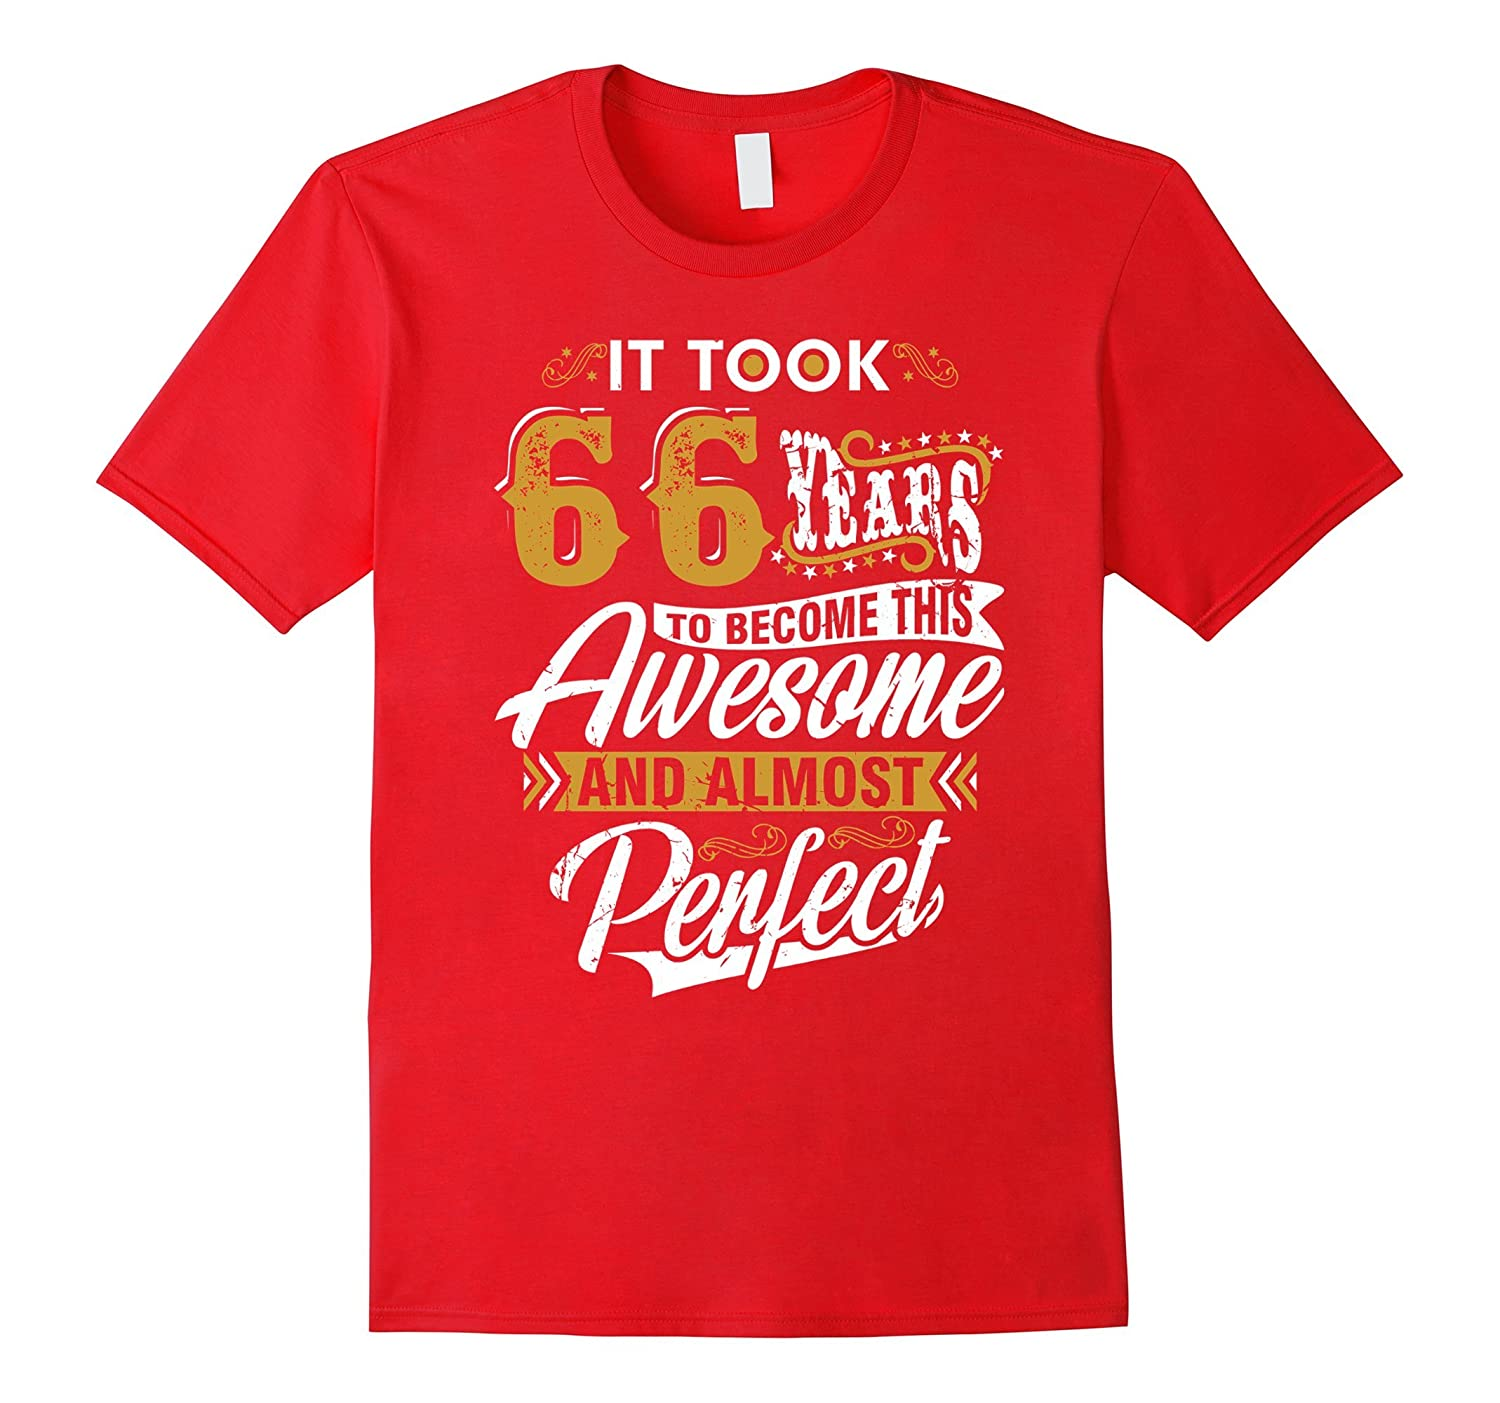 It took 66 years to become this Awesome and Perfect T Shirt-TJ